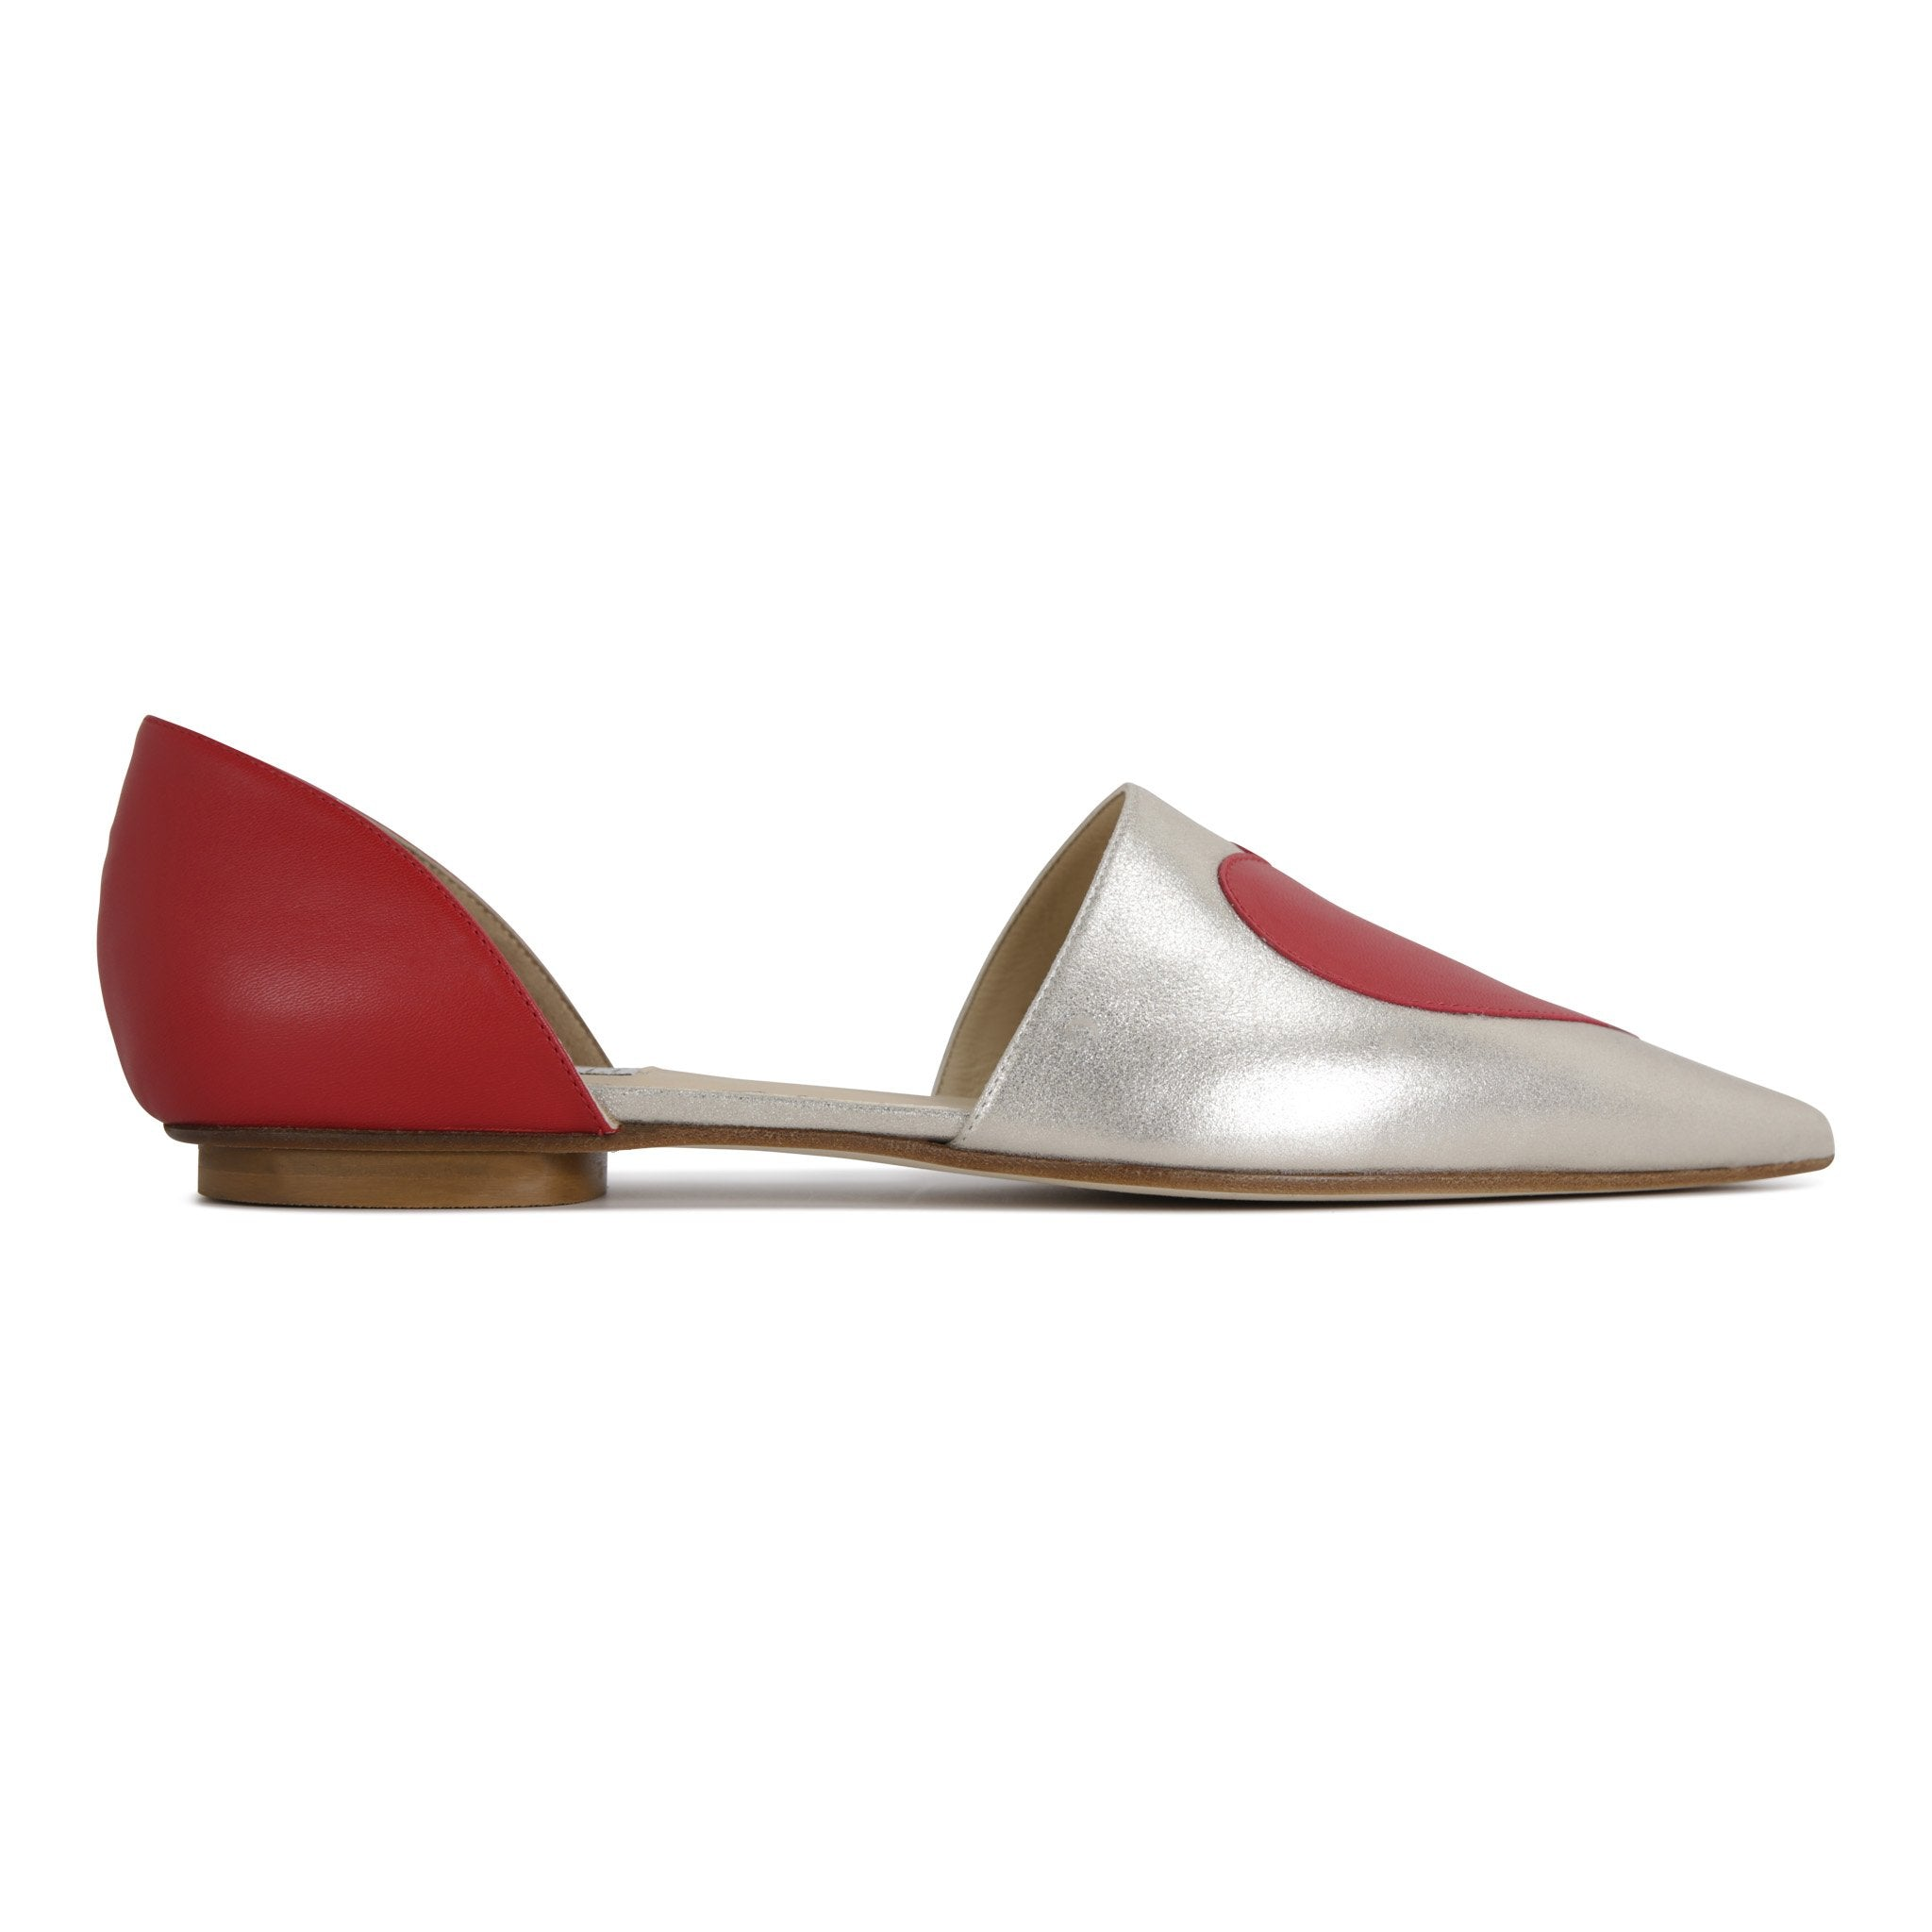 ELBA - Burma Platino + Red Heart, VIAJIYU - Women's Hand Made Sustainable Luxury Shoes. Made in Italy. Made to Order.